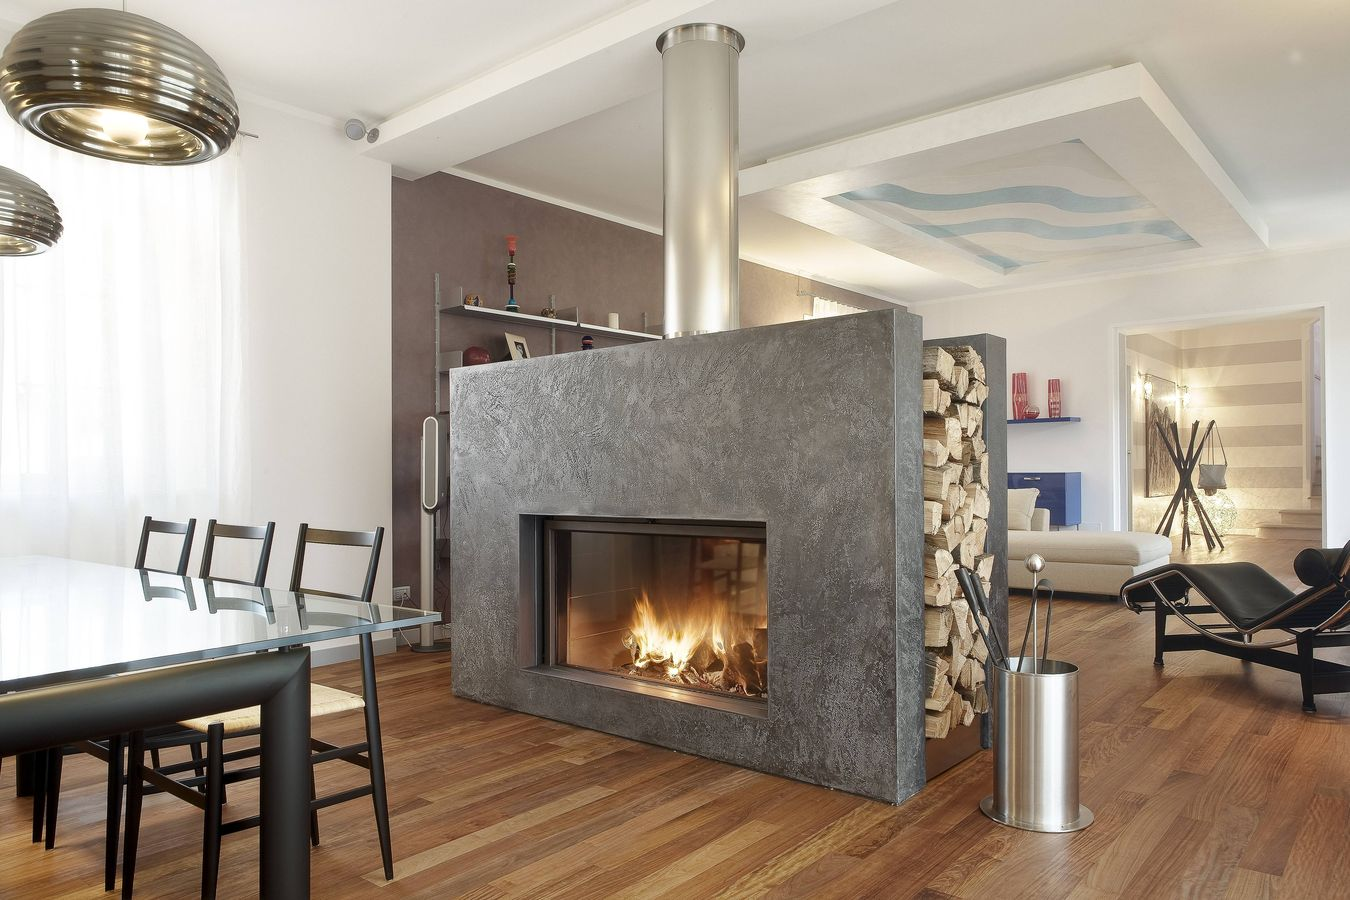 2 Sided Fireplace Inserts Design Ideas